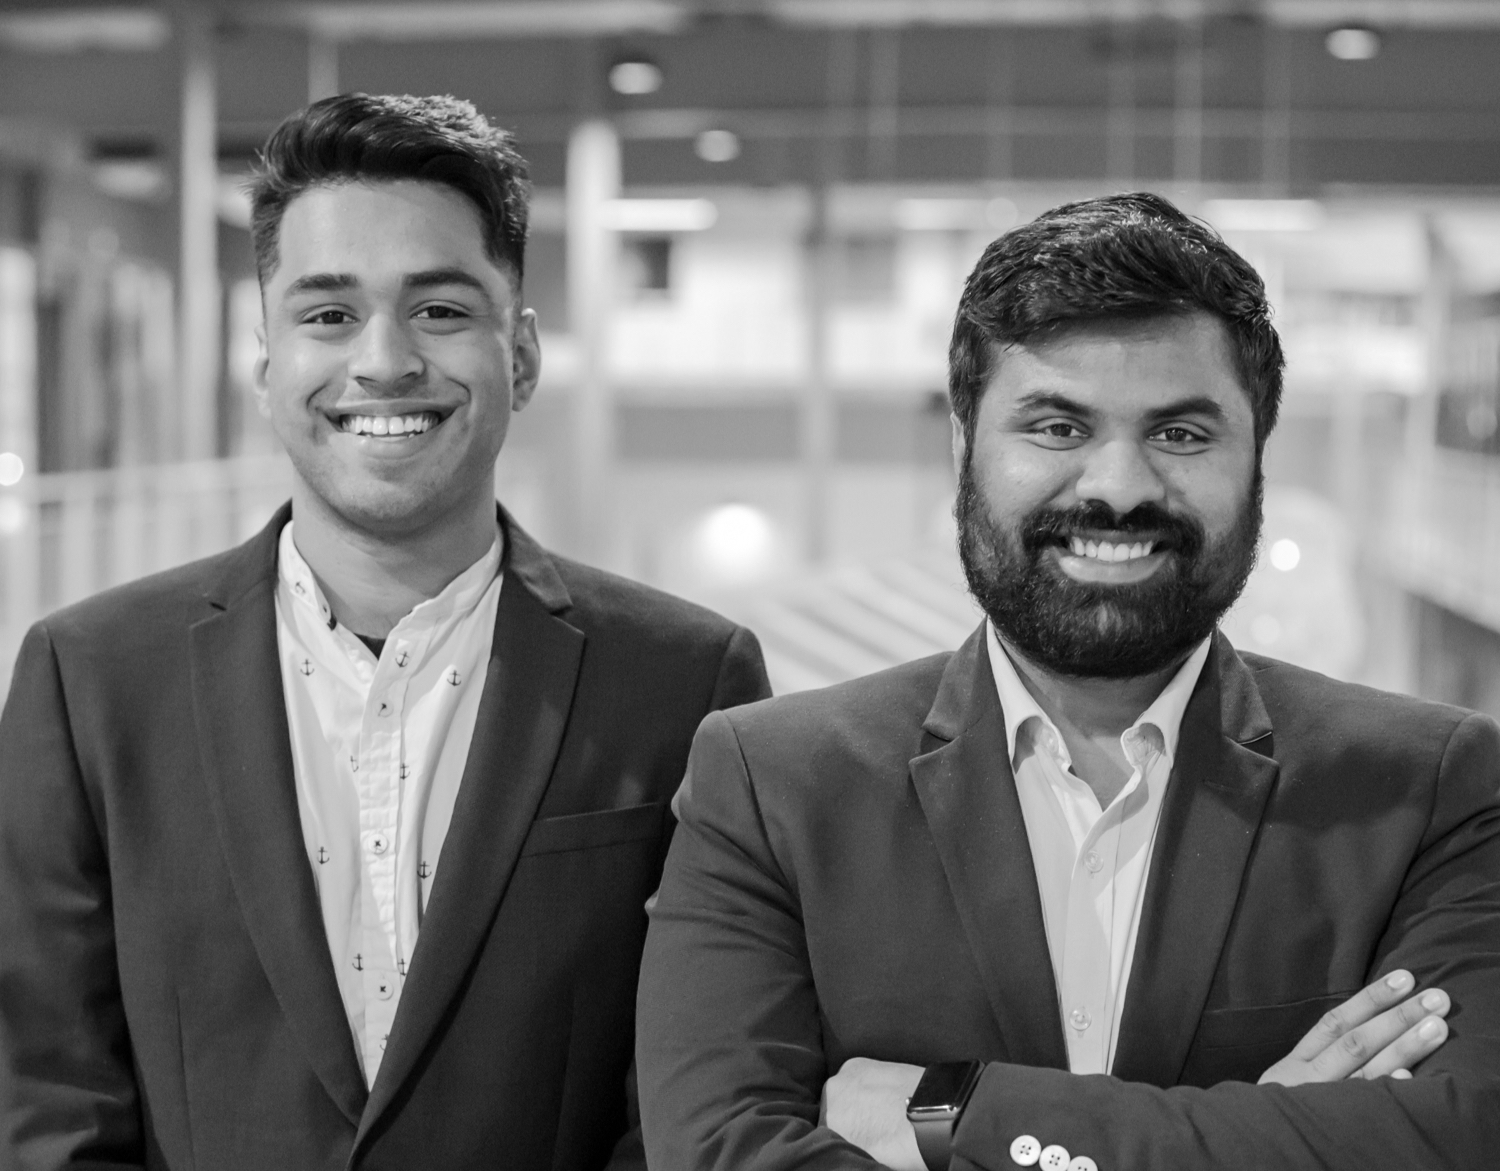 Picture of Karthik and Karthik wearing suits and smiling for the camera